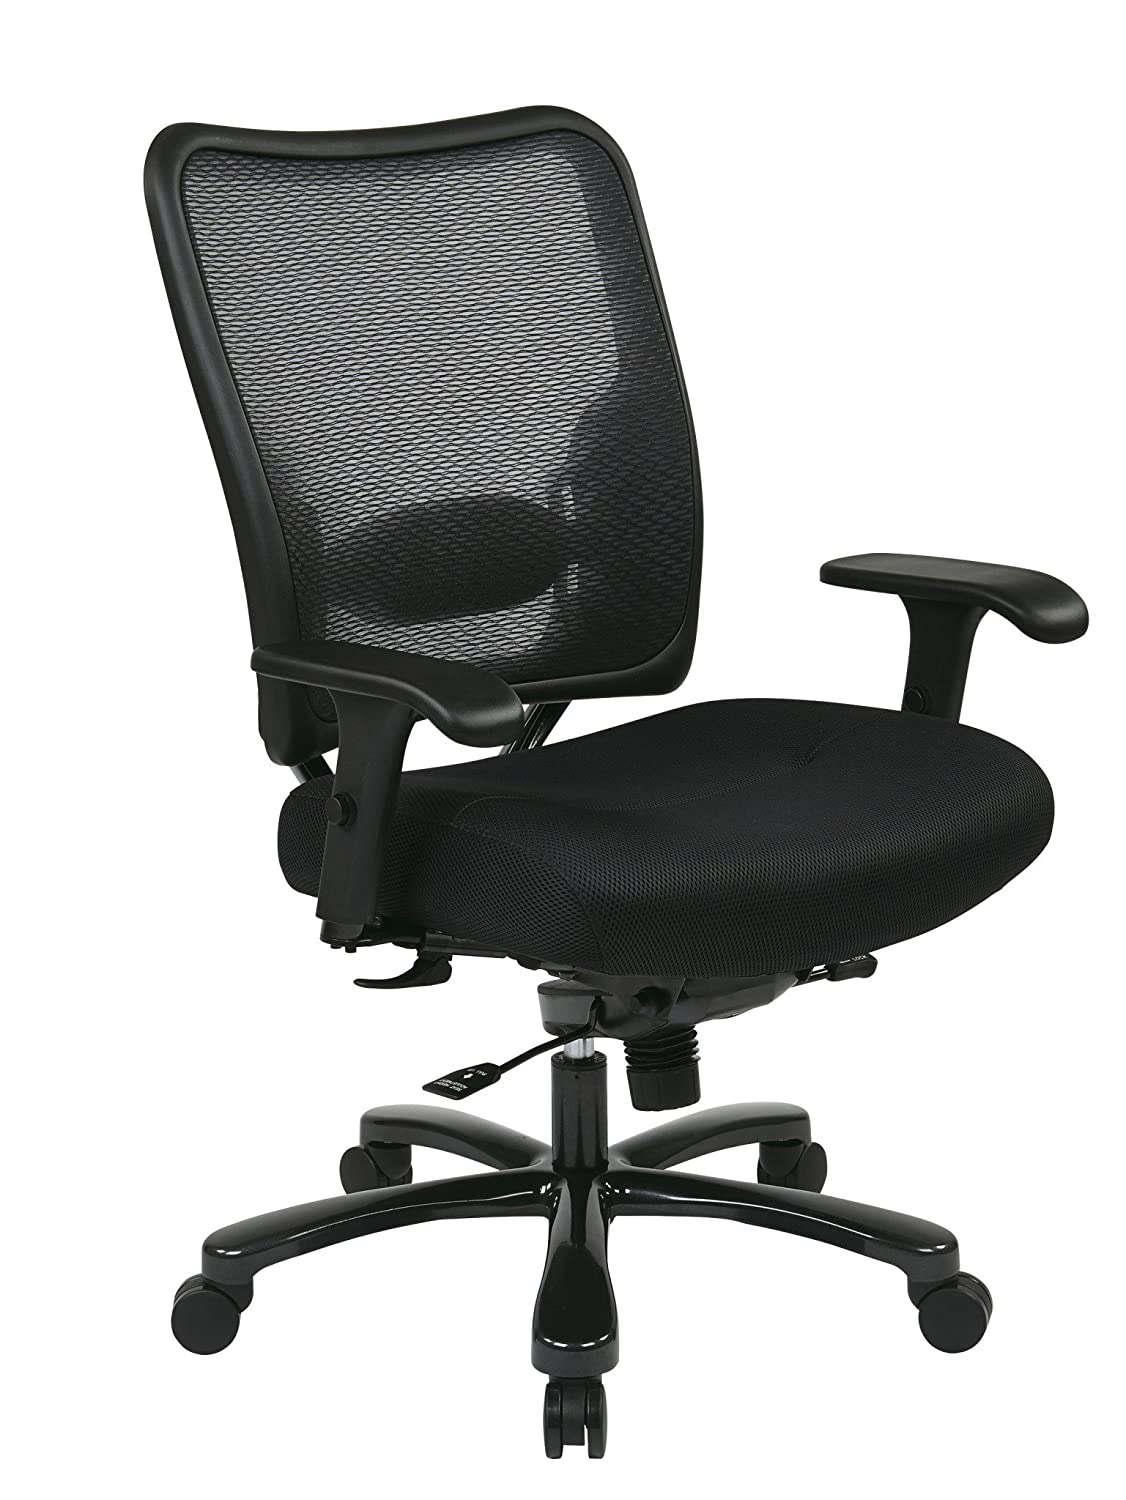 office chairs for heavy people lift chair rental big man up to 400 lbs